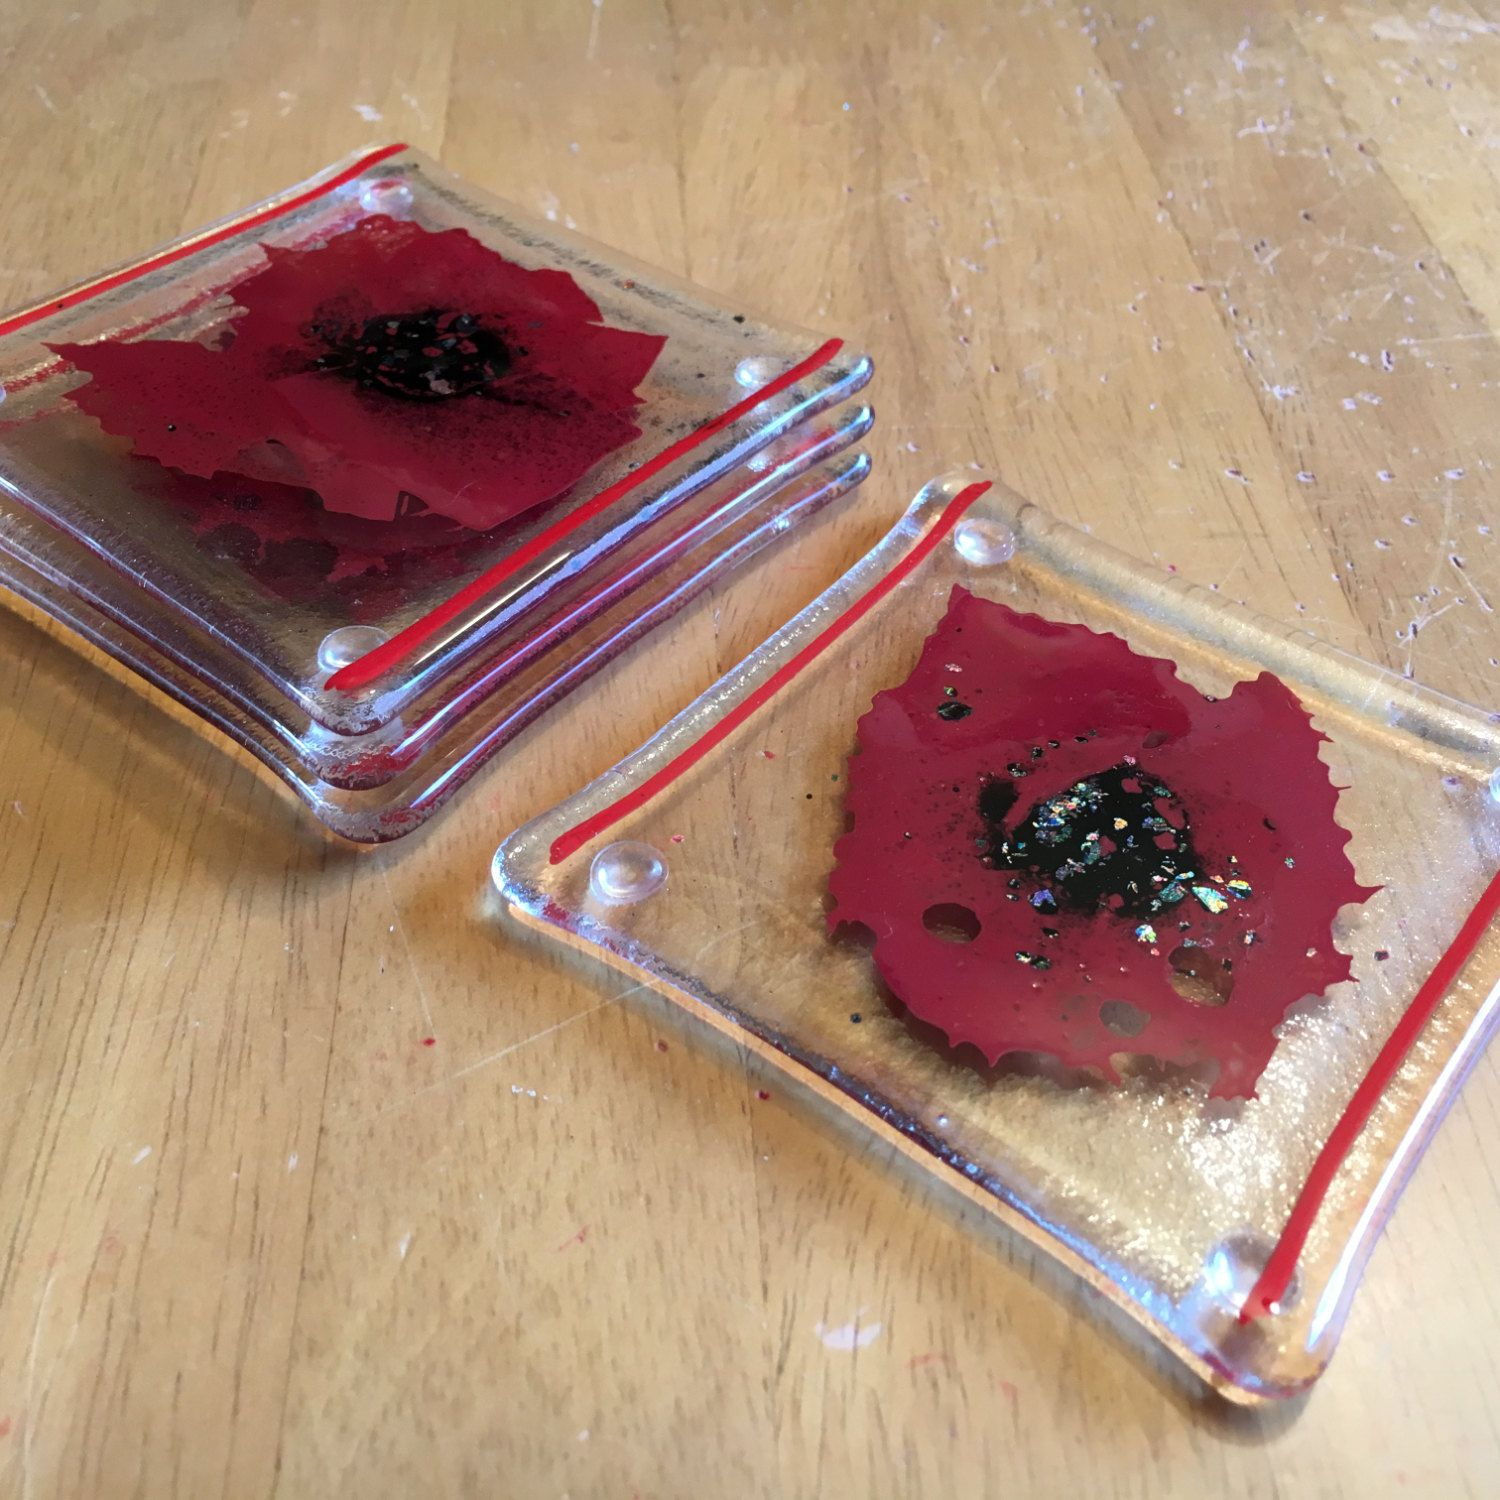 4 Poppy Themed Handfused Glass Coasters by CraftySewnSew123 on Etsy